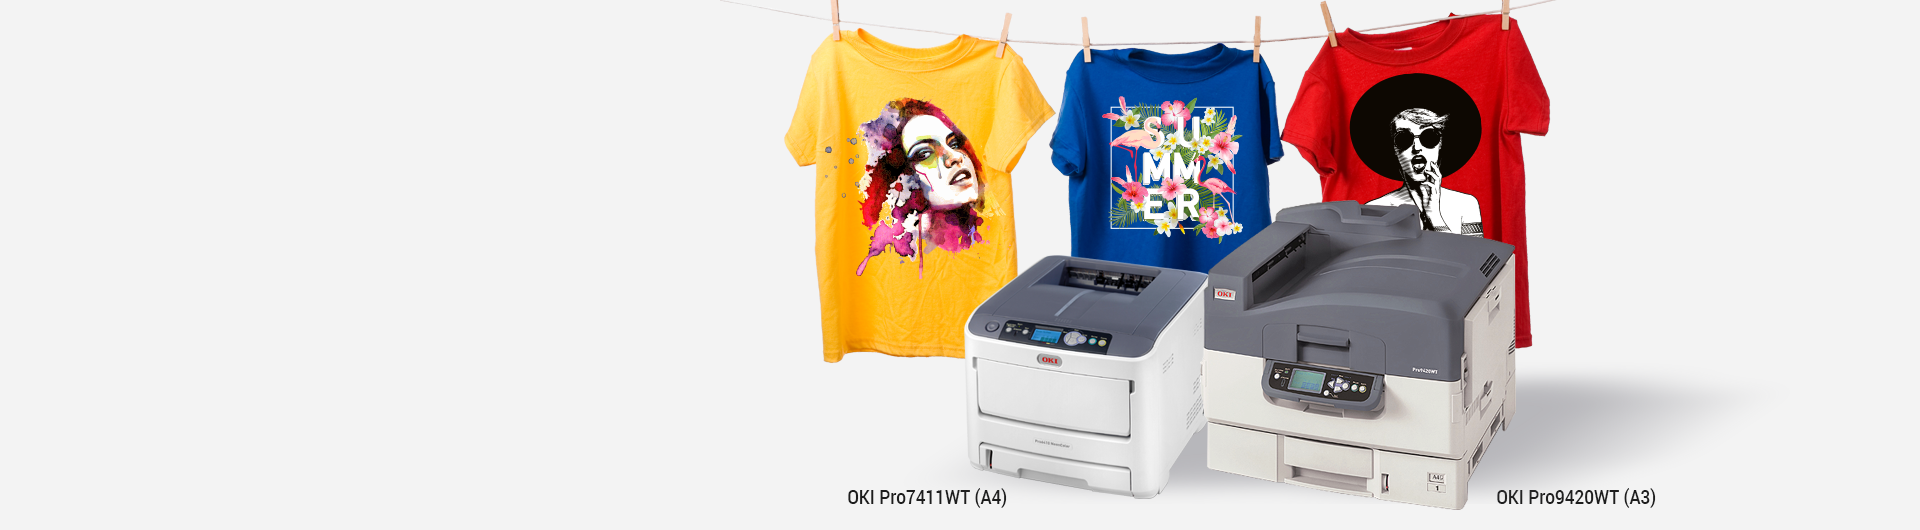 OKI white toner printer